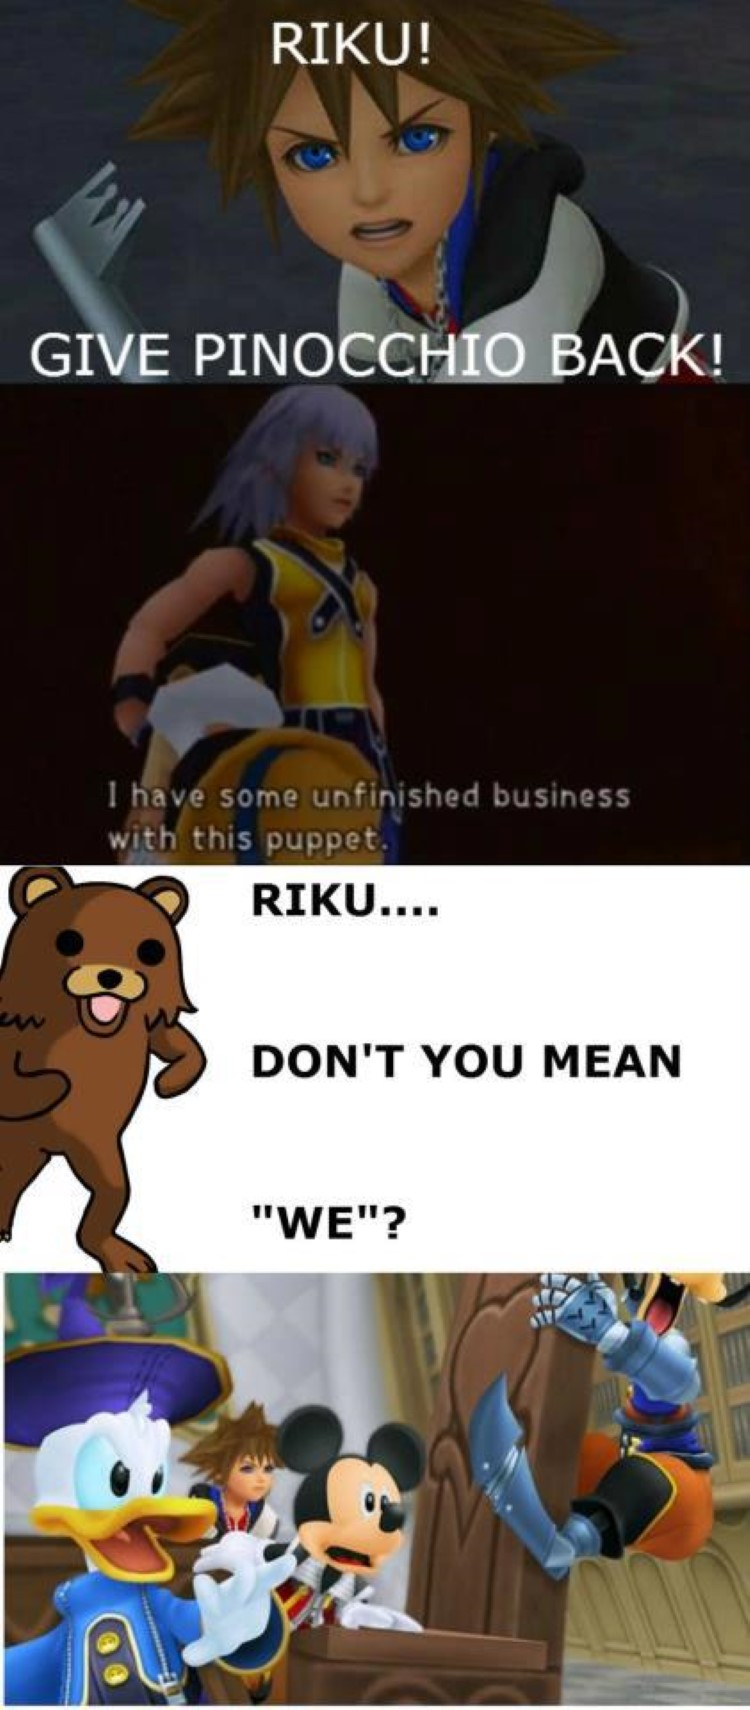 Riku is not done with with puppet